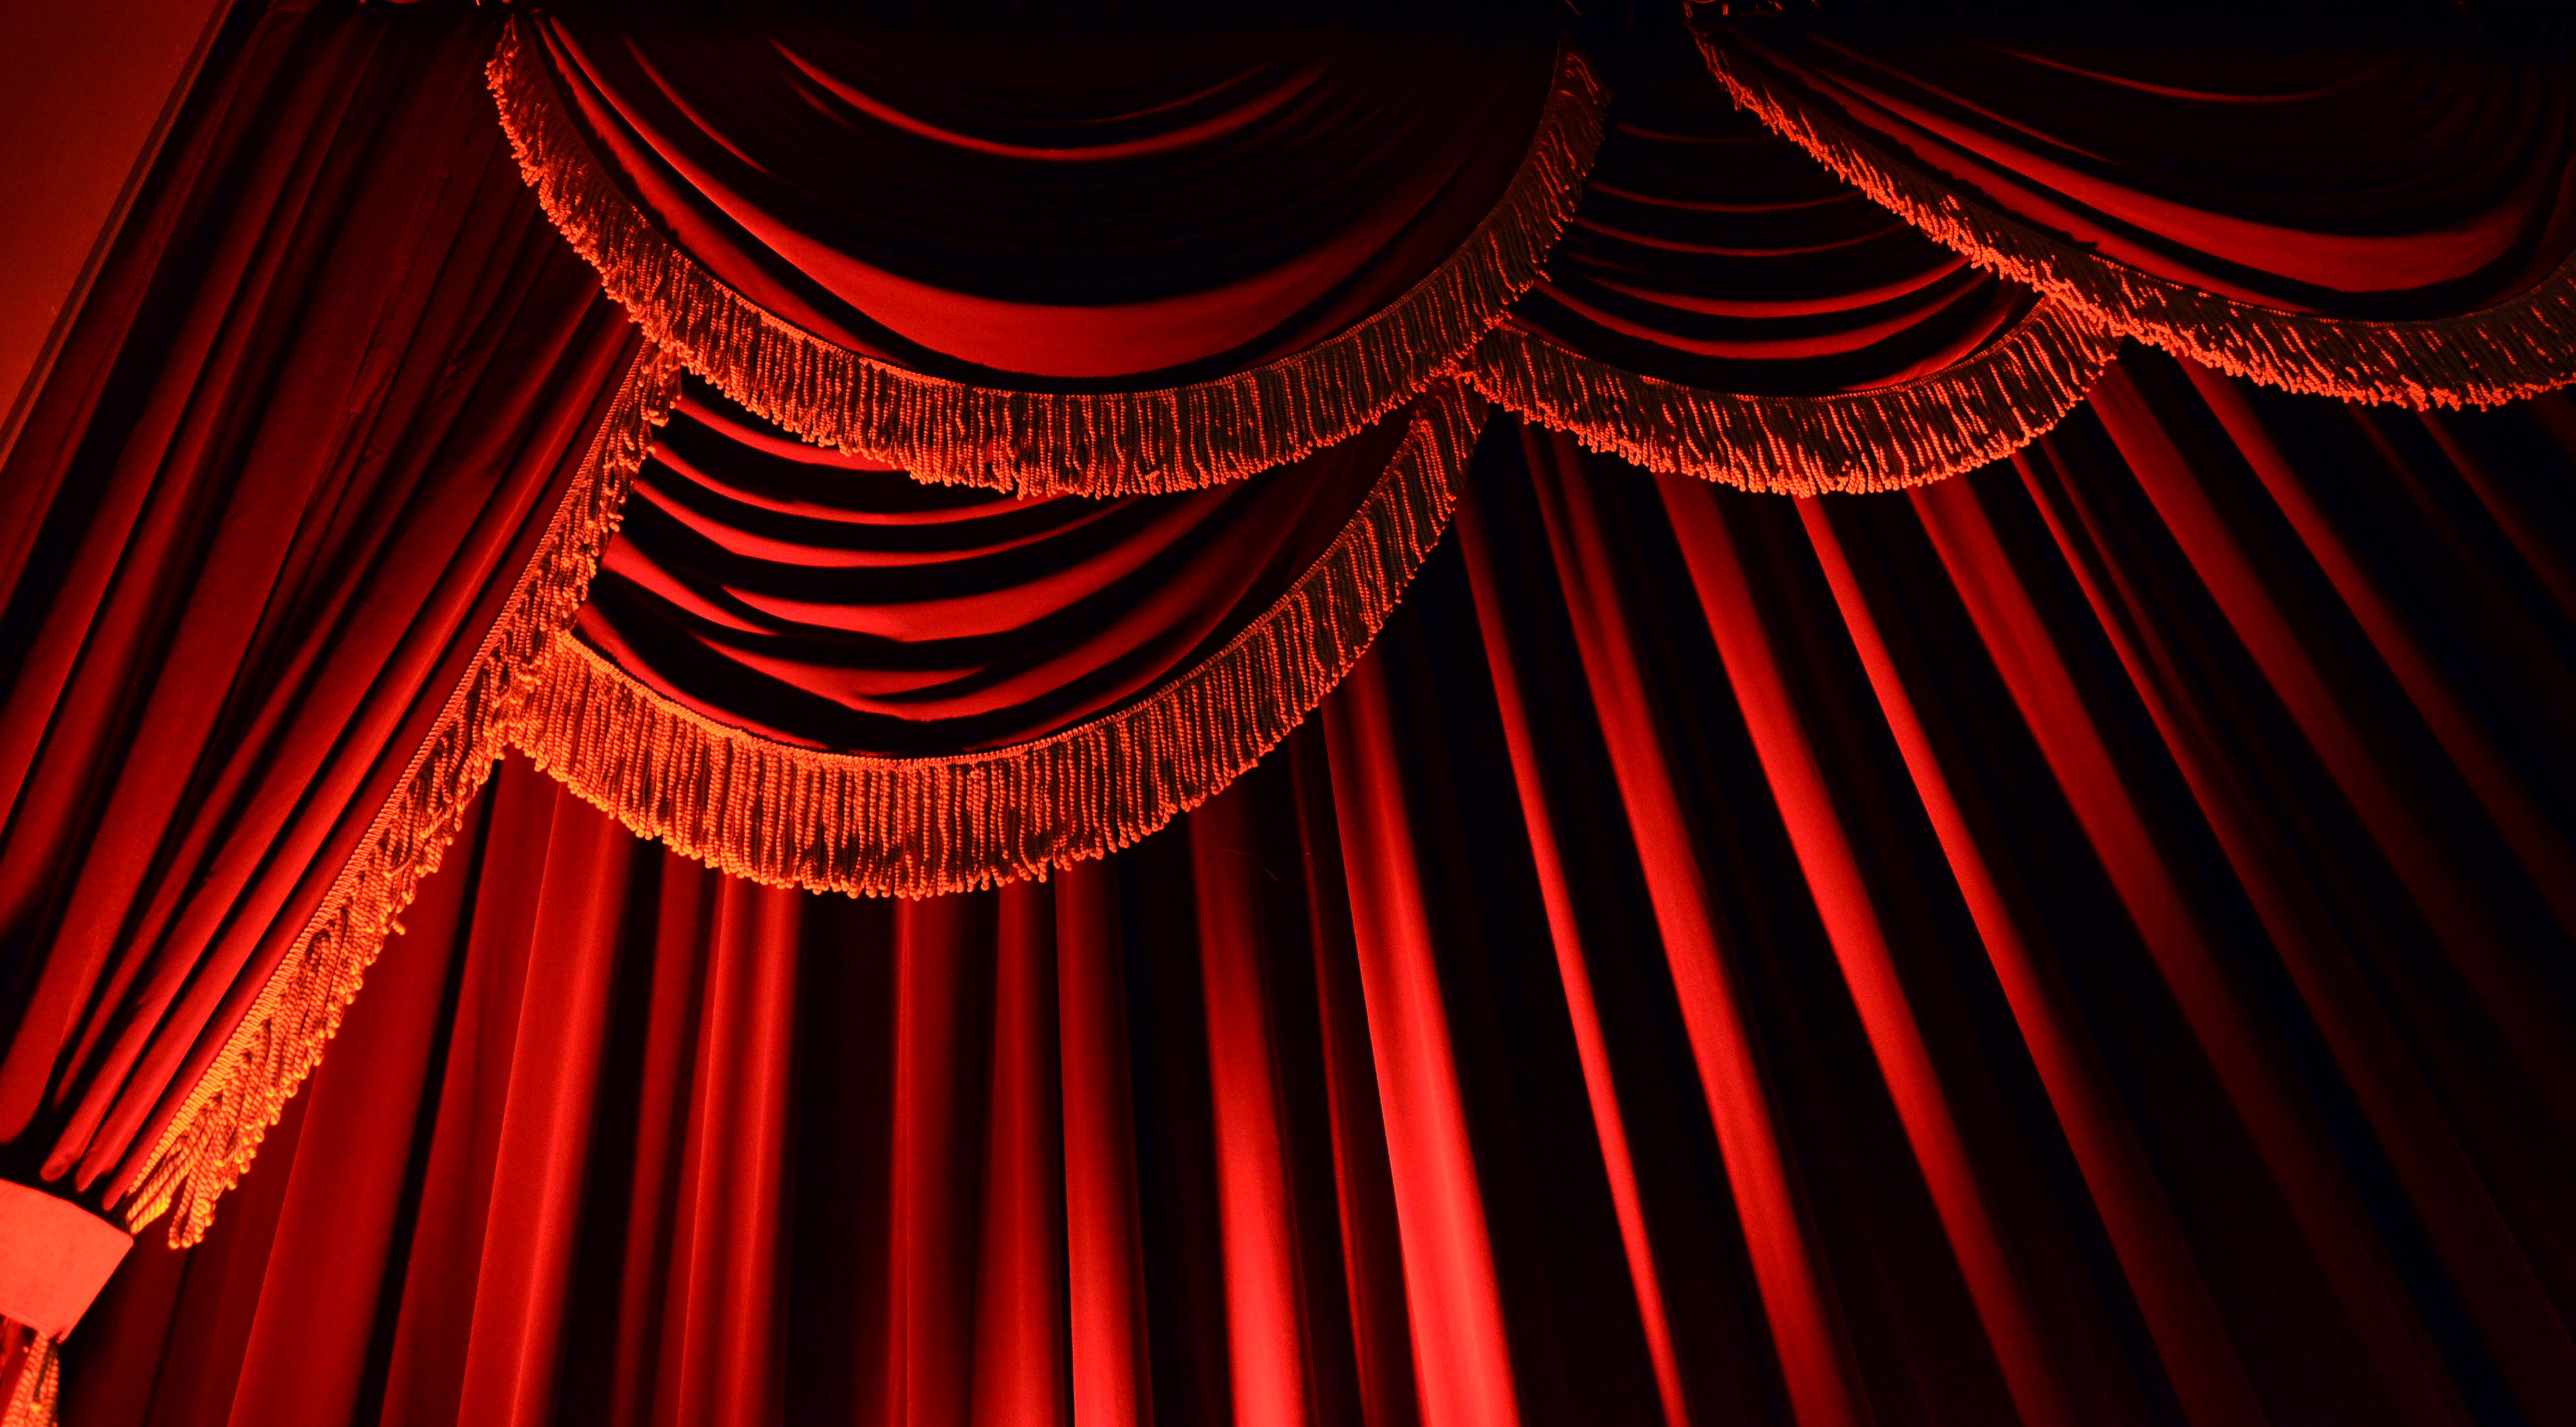 Theatre curtains png - Theater Curtains Png 17 Best Images About Don Quixote Graphic Design On Pinterest Spotlight Theater